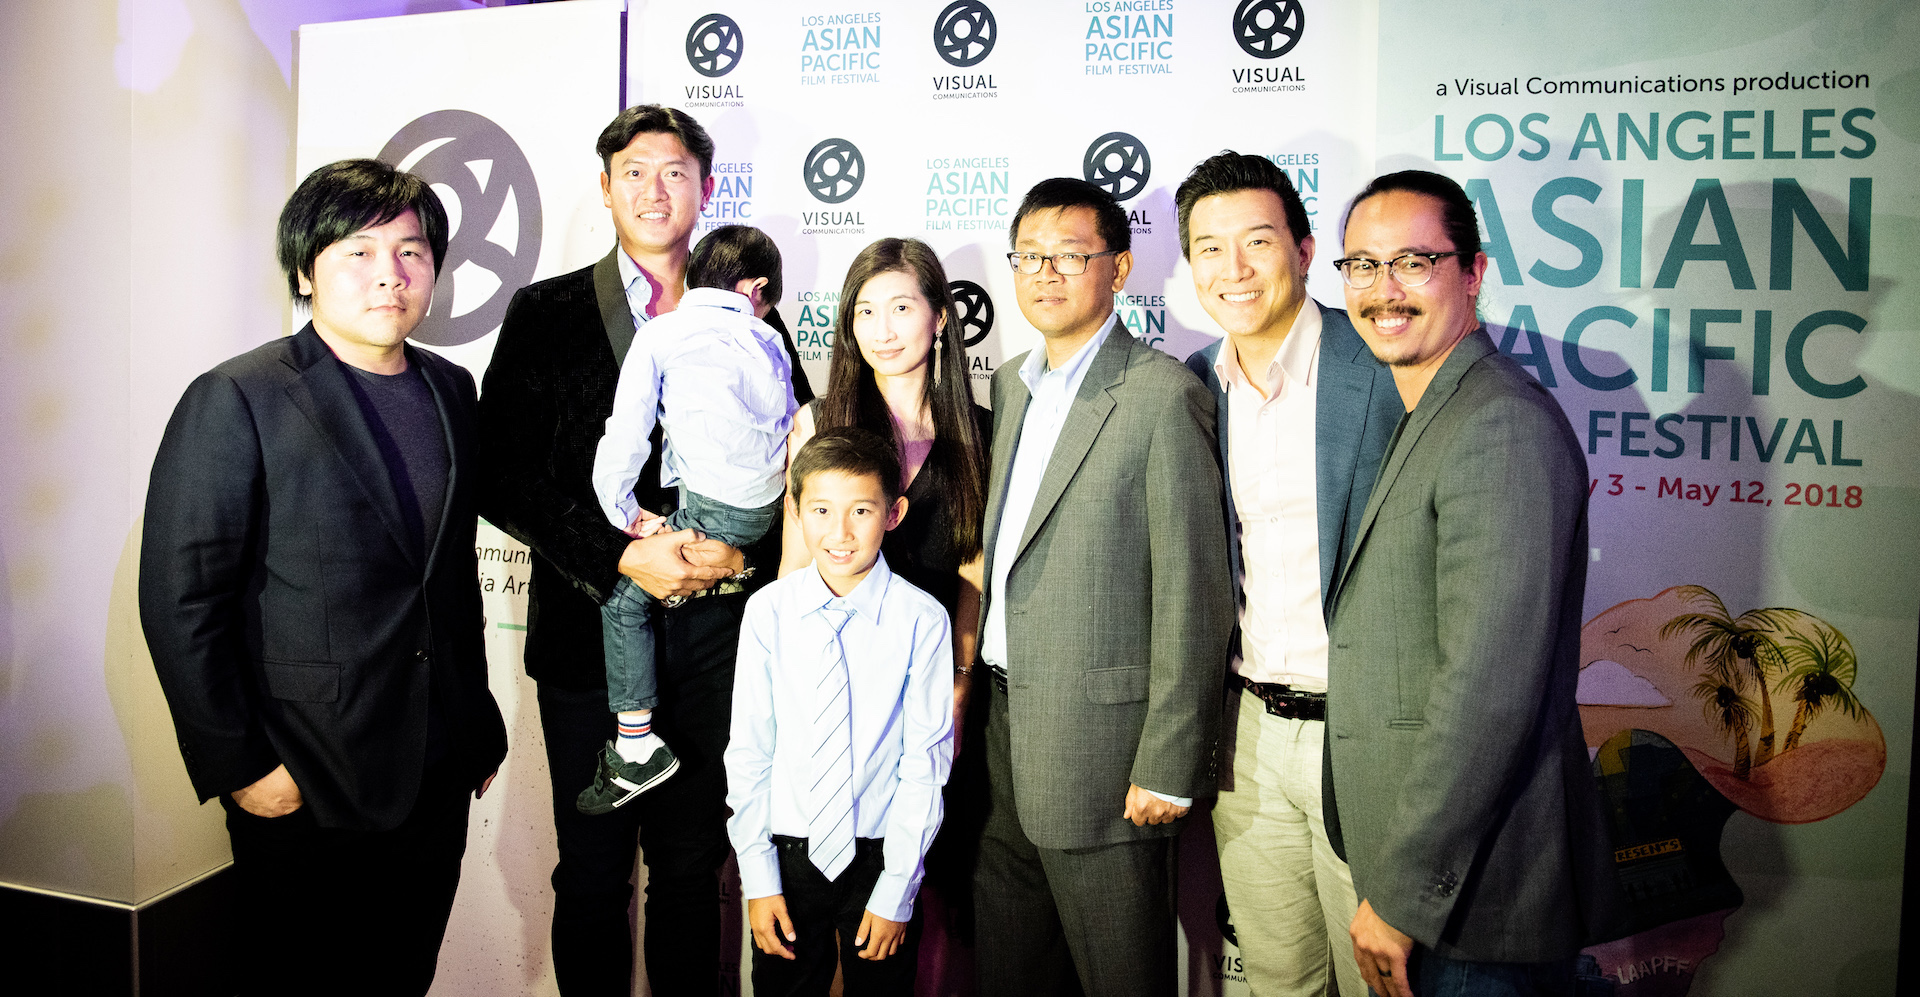 Dir. Frank W. Chen (left) with Chien-Ming Wang and his family, and his agent Alan Chang (second to the right) and producer Brian Yang (right).